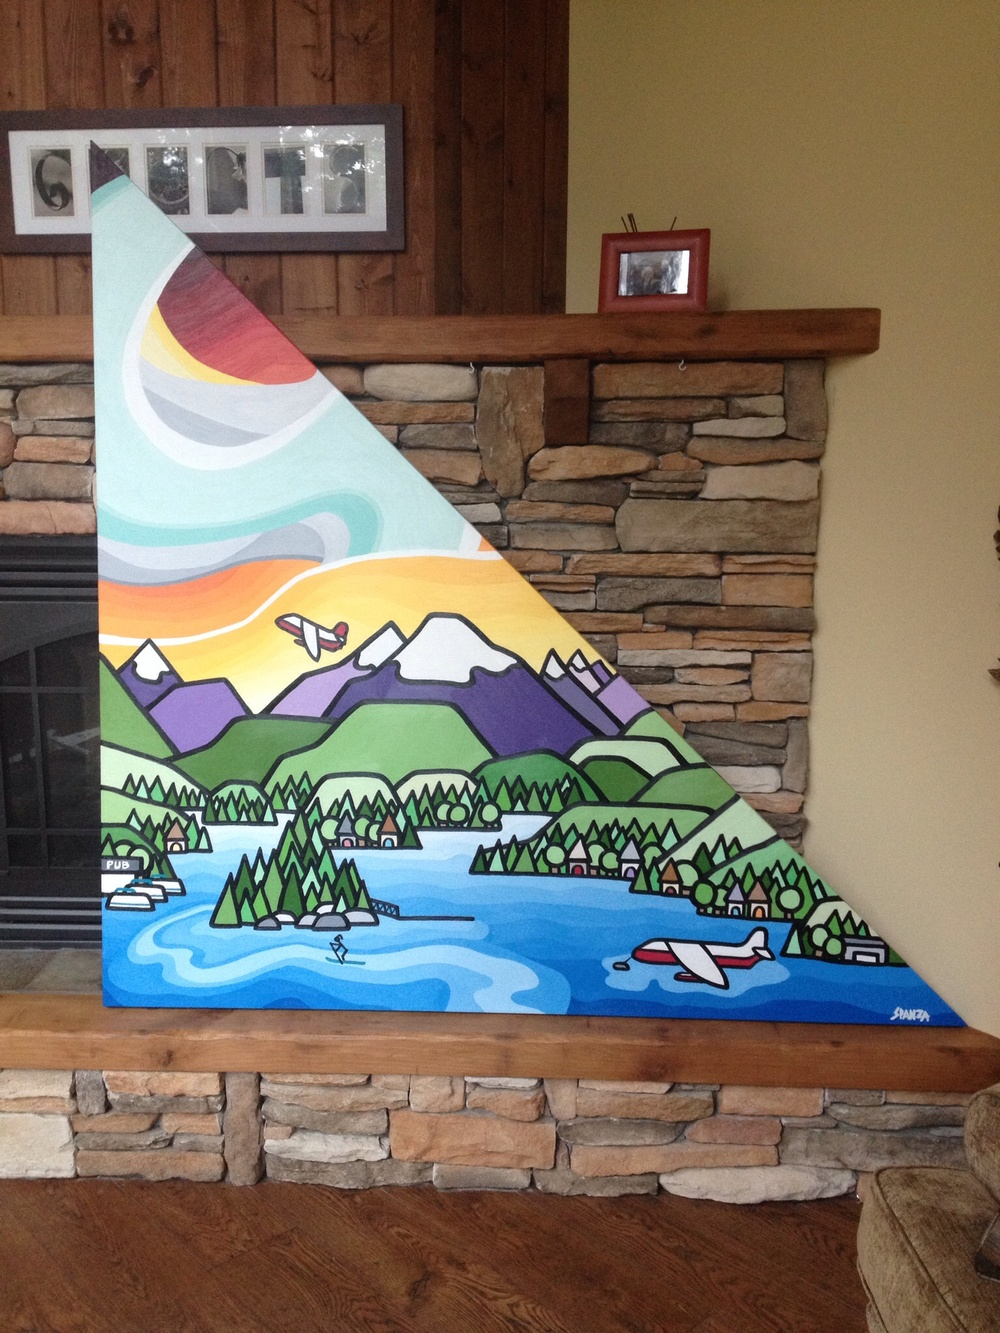 "My first triangle painting includes all the features of Sproat Lake that this beautiful family loves. Size 68"" x 68"" x 96"" acrylic on canvas. SOLD - Commission"